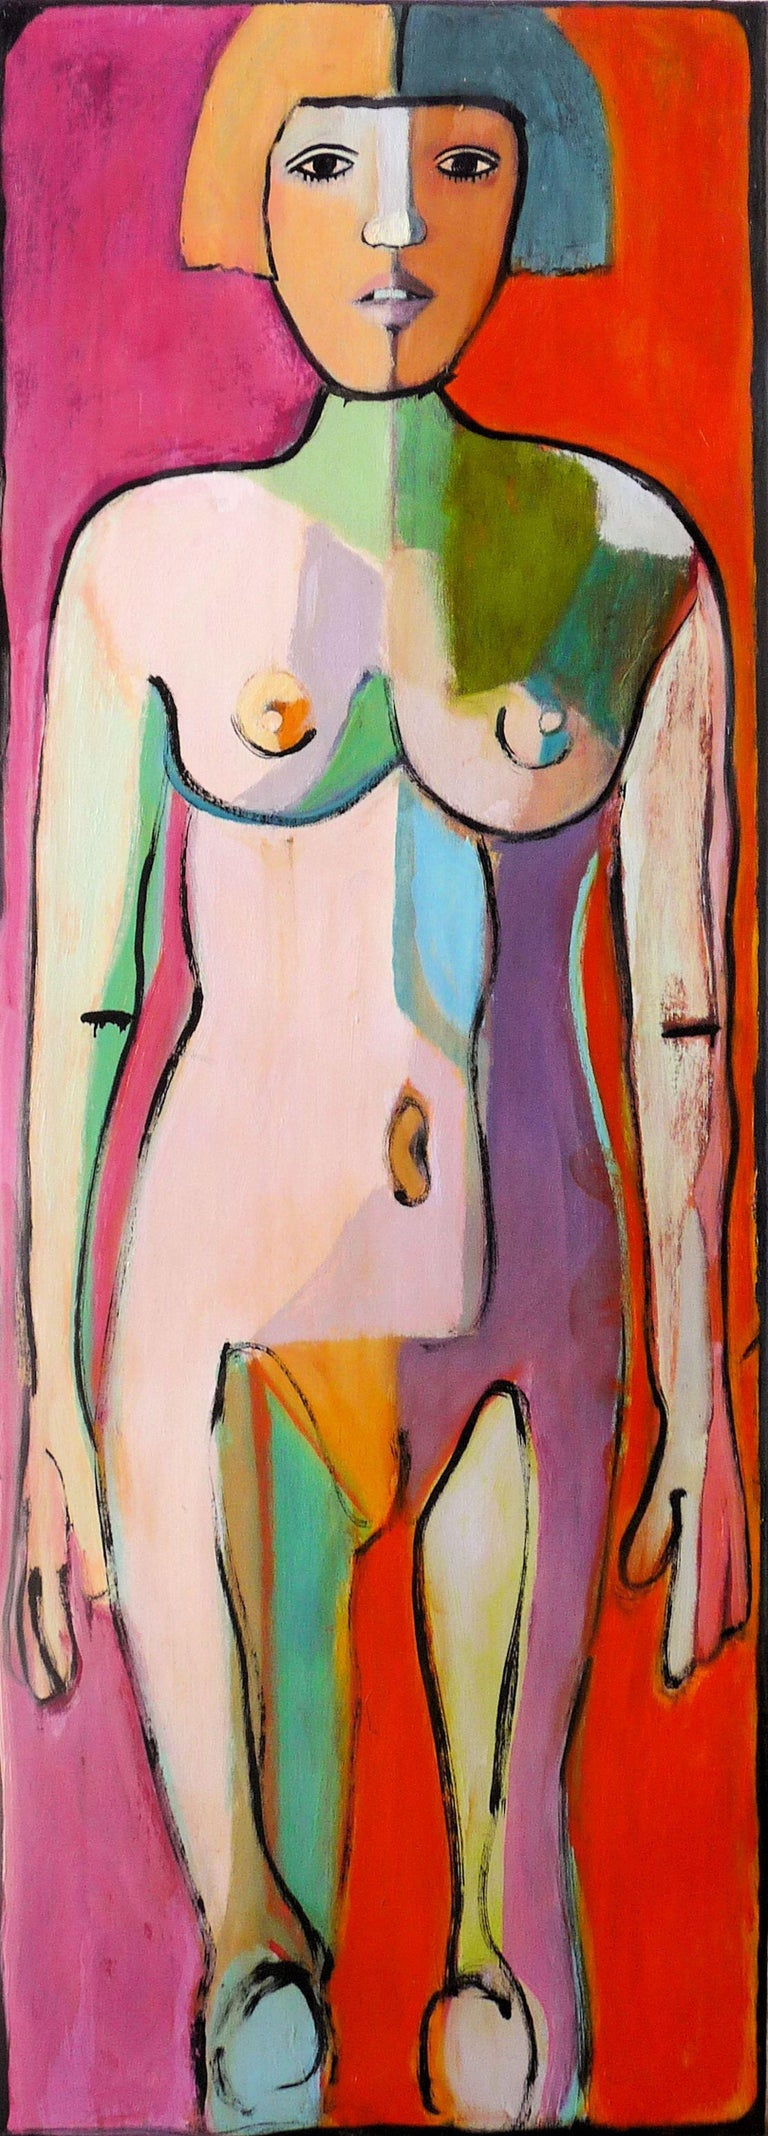 VERY COLORFUL ABSTRACT STANDING NUDE, long and narrow, great for an end of hallway statement :: Painting :: Post Modern :: This piece comes with an official certificate of authenticity signed by the artist :: Ready to Hang: Yes :: Signed: Yes ::